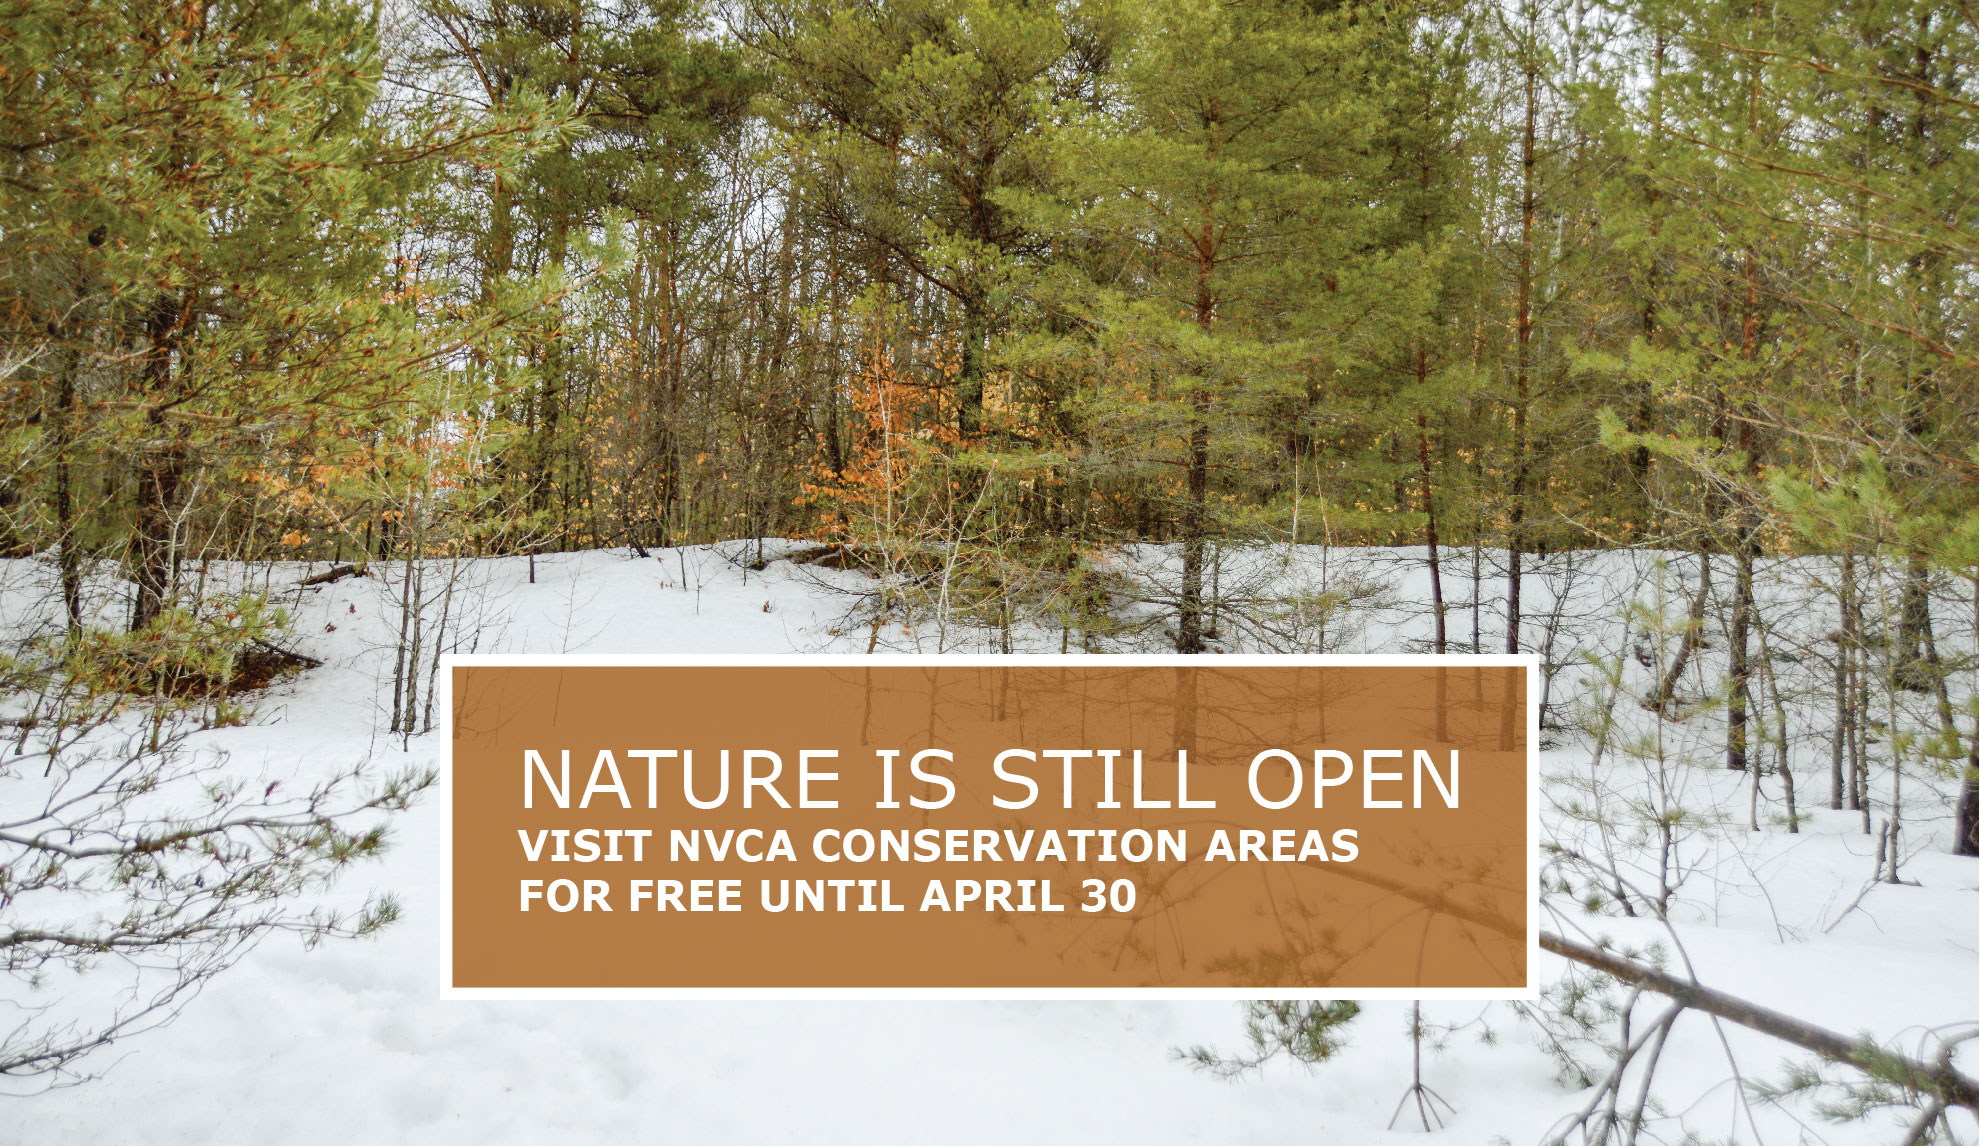 Visit Free Conservation Areas for Free until April 30-01.jpg